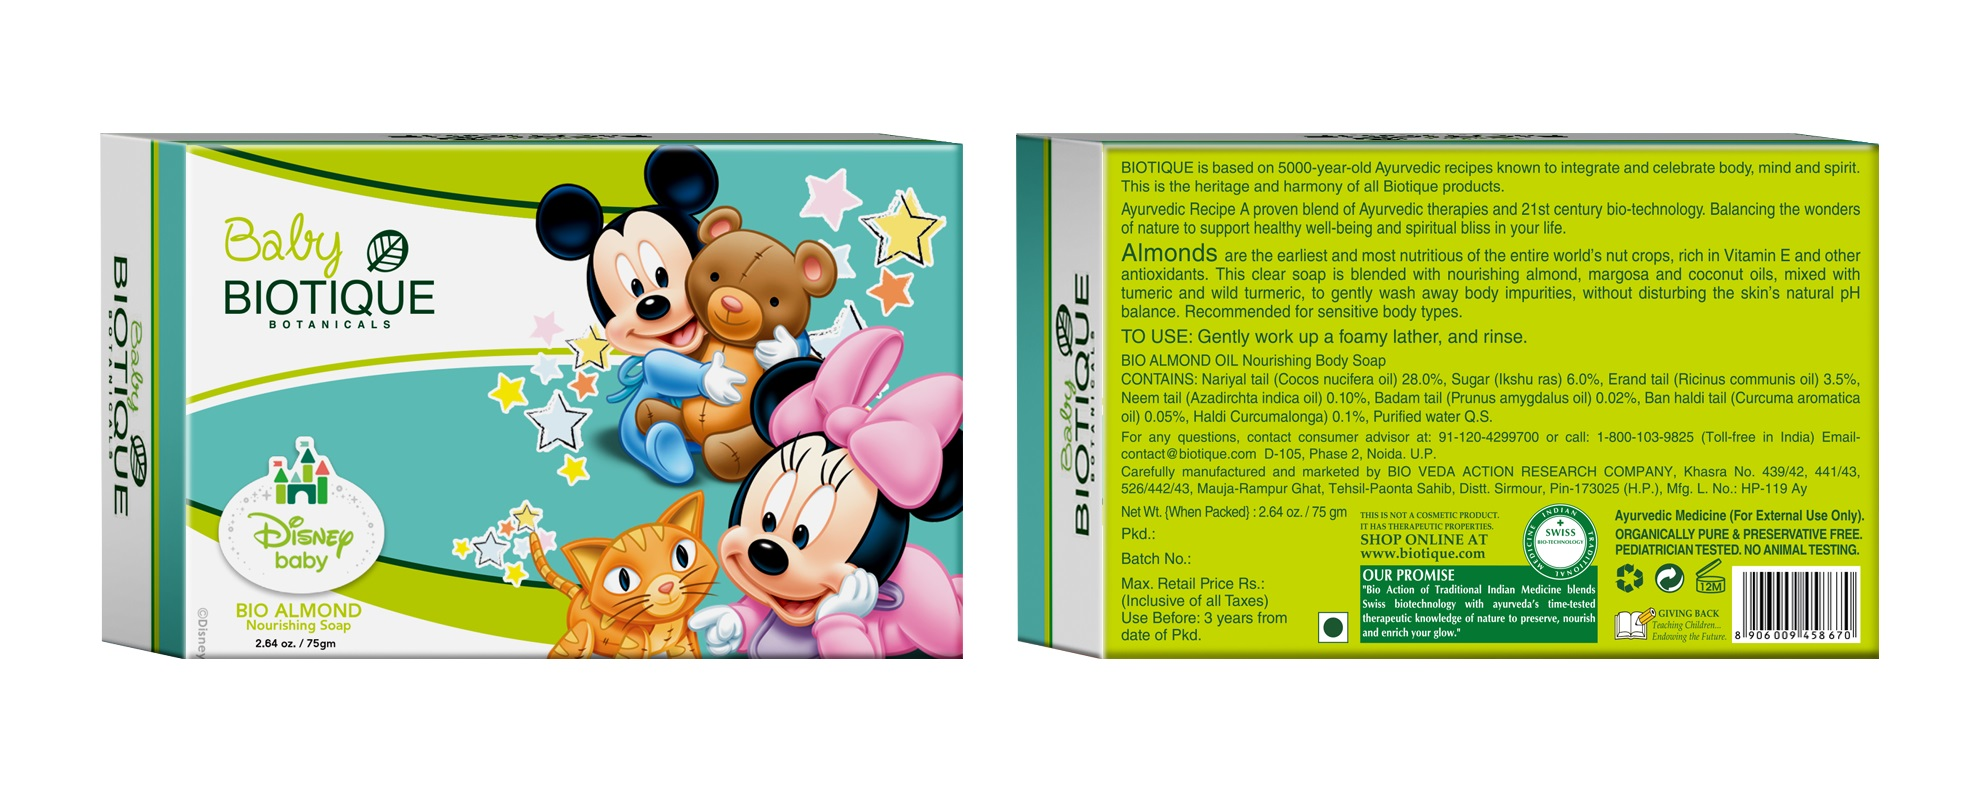 Biotique Disney Baby Boy Bio Almond Nourishing Soap  available at Nykaa for Rs.55